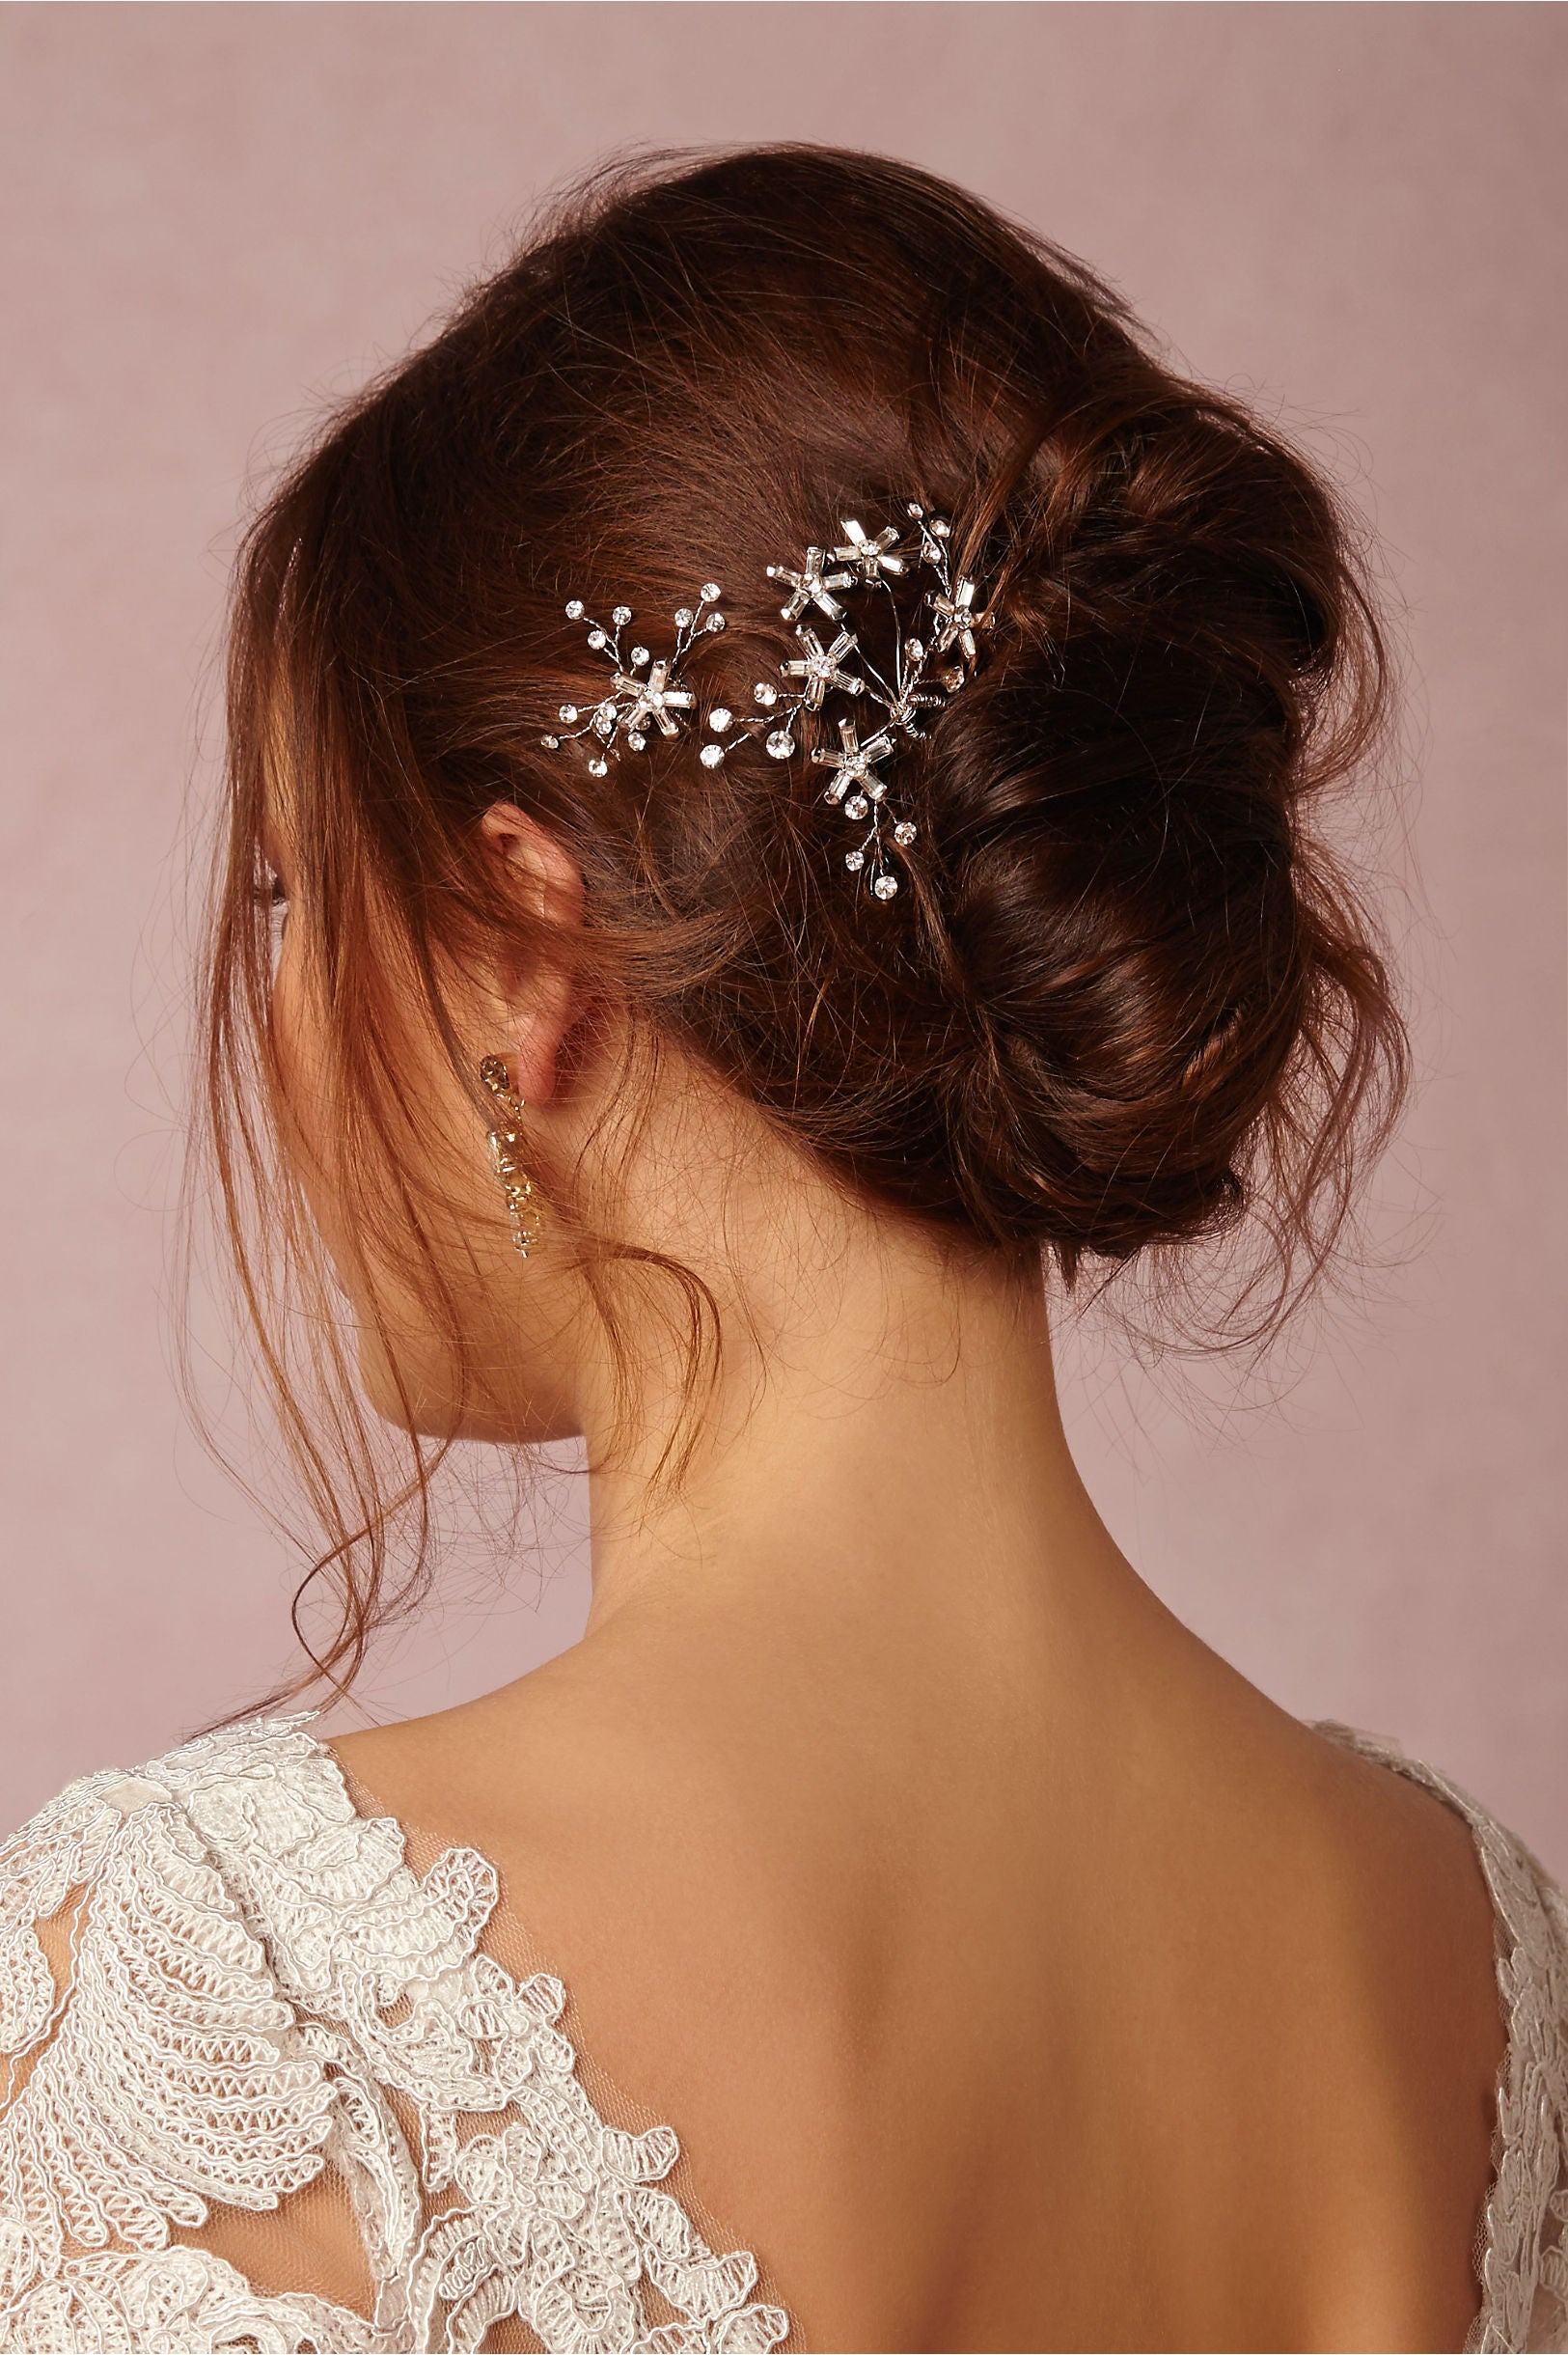 stargazer bobbies, bobby pins, crystal hair pins